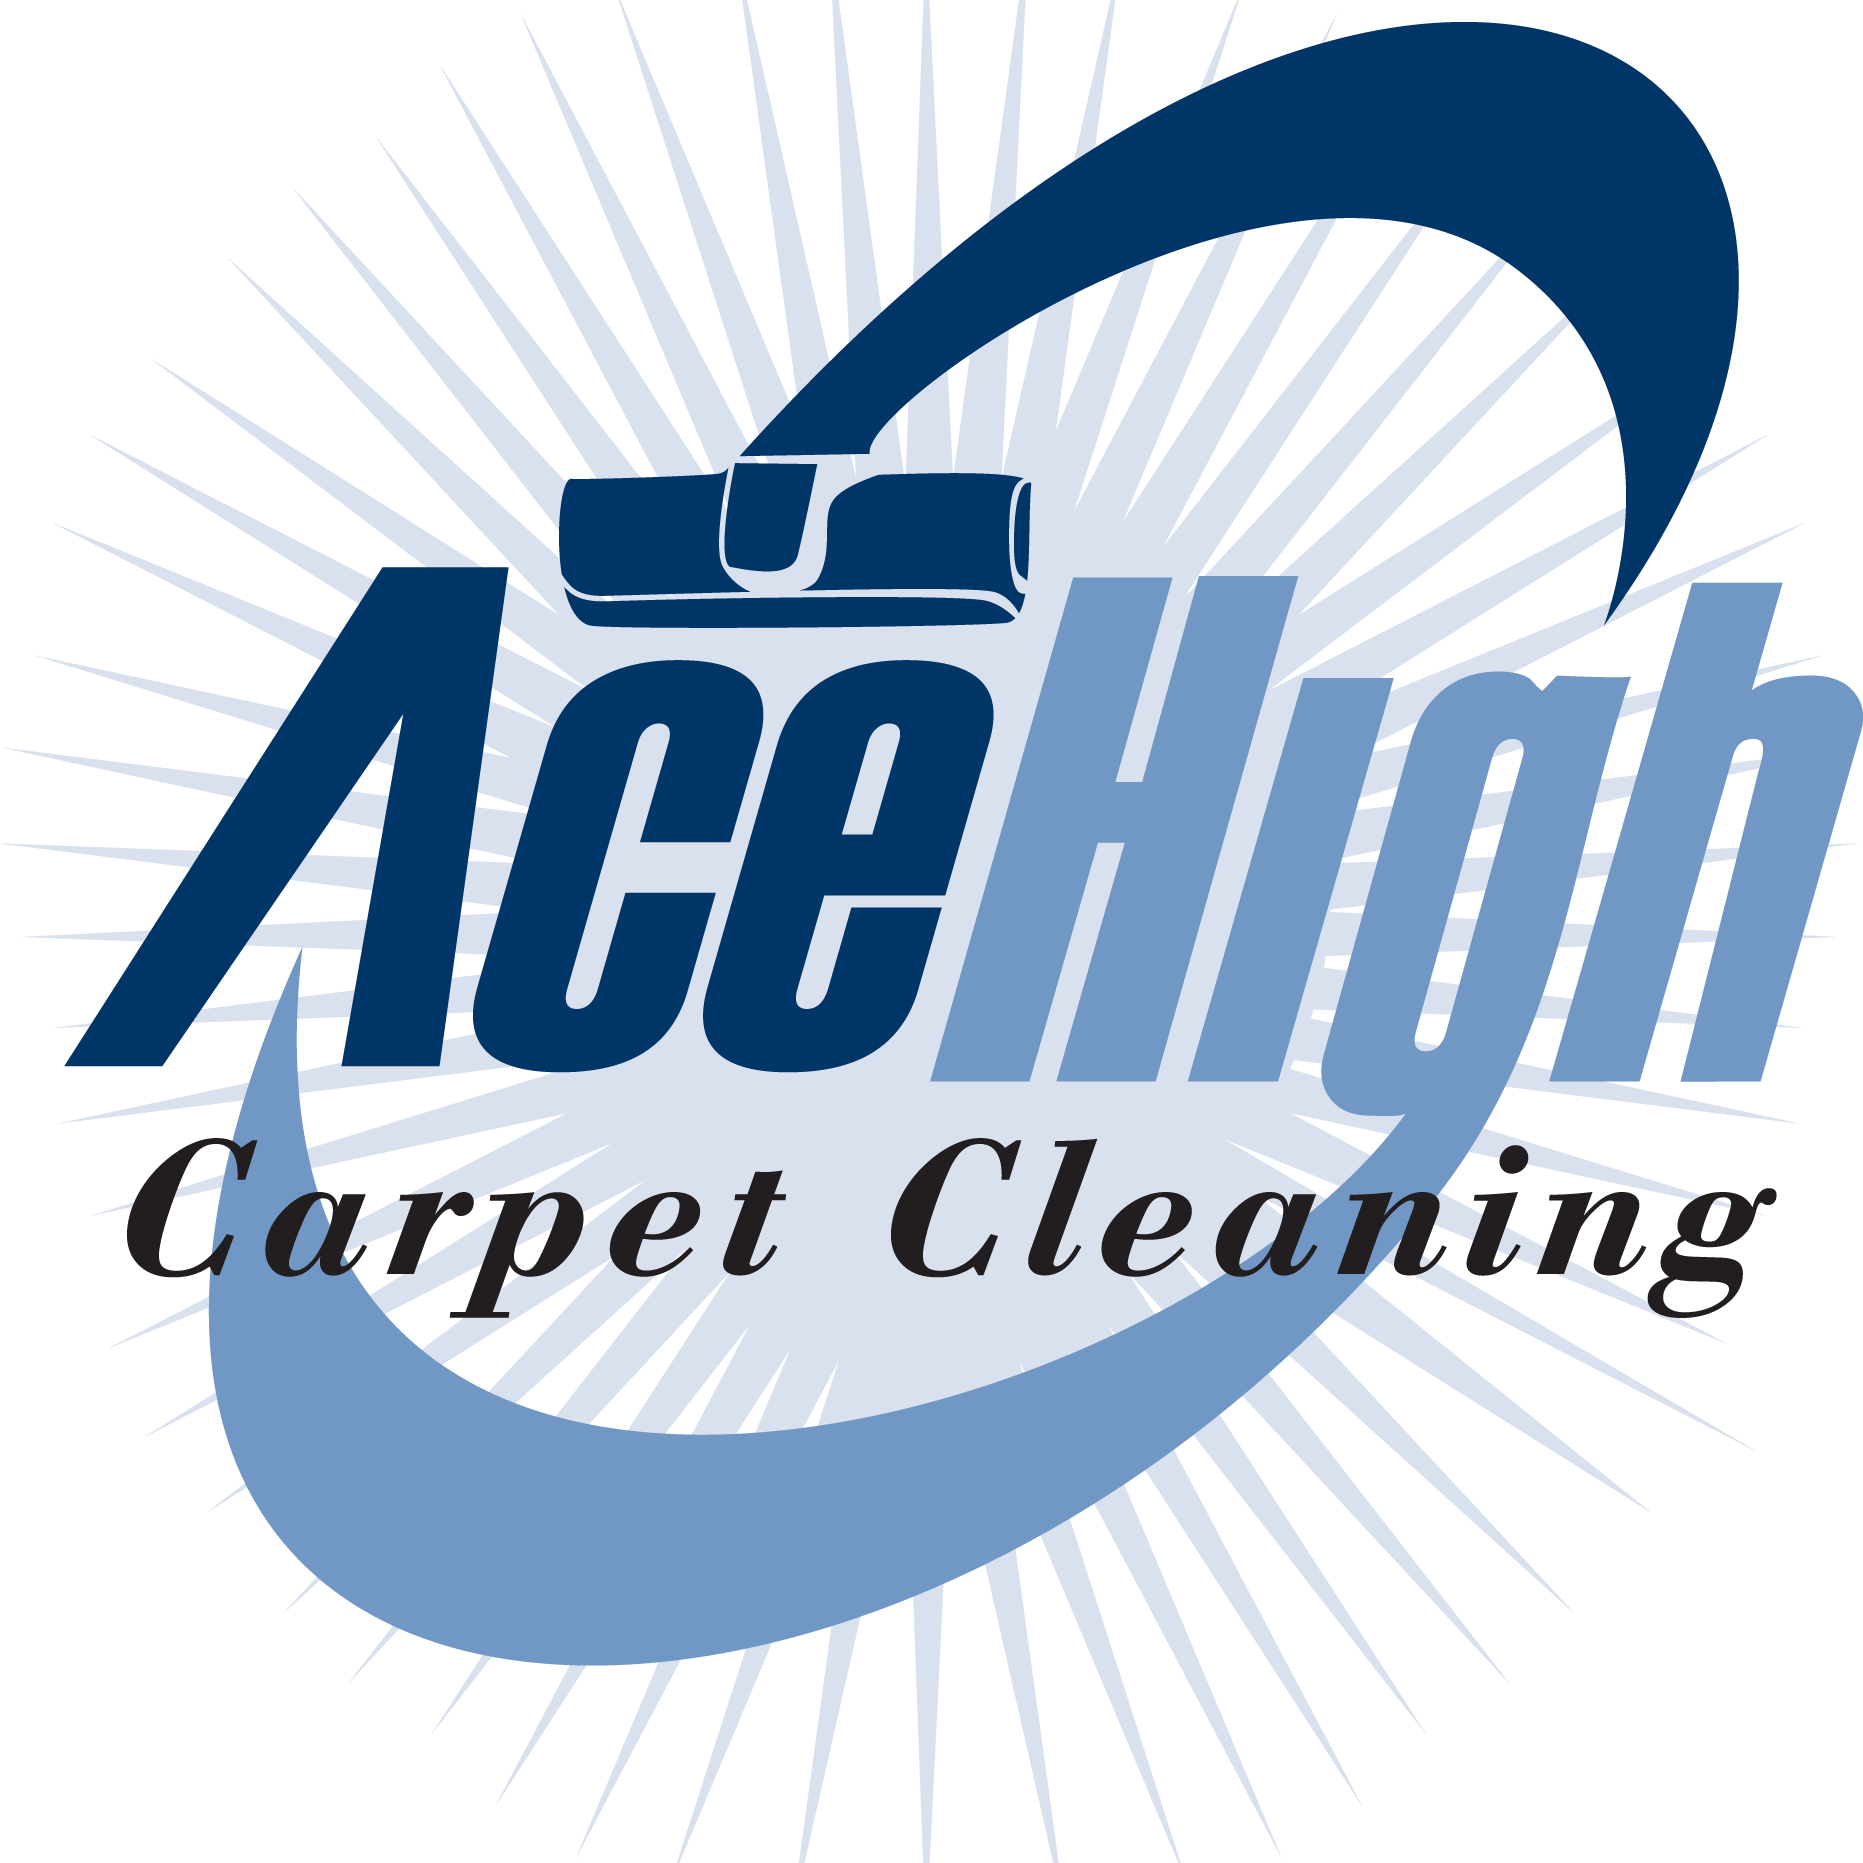 Ace High Carpet Cleaning